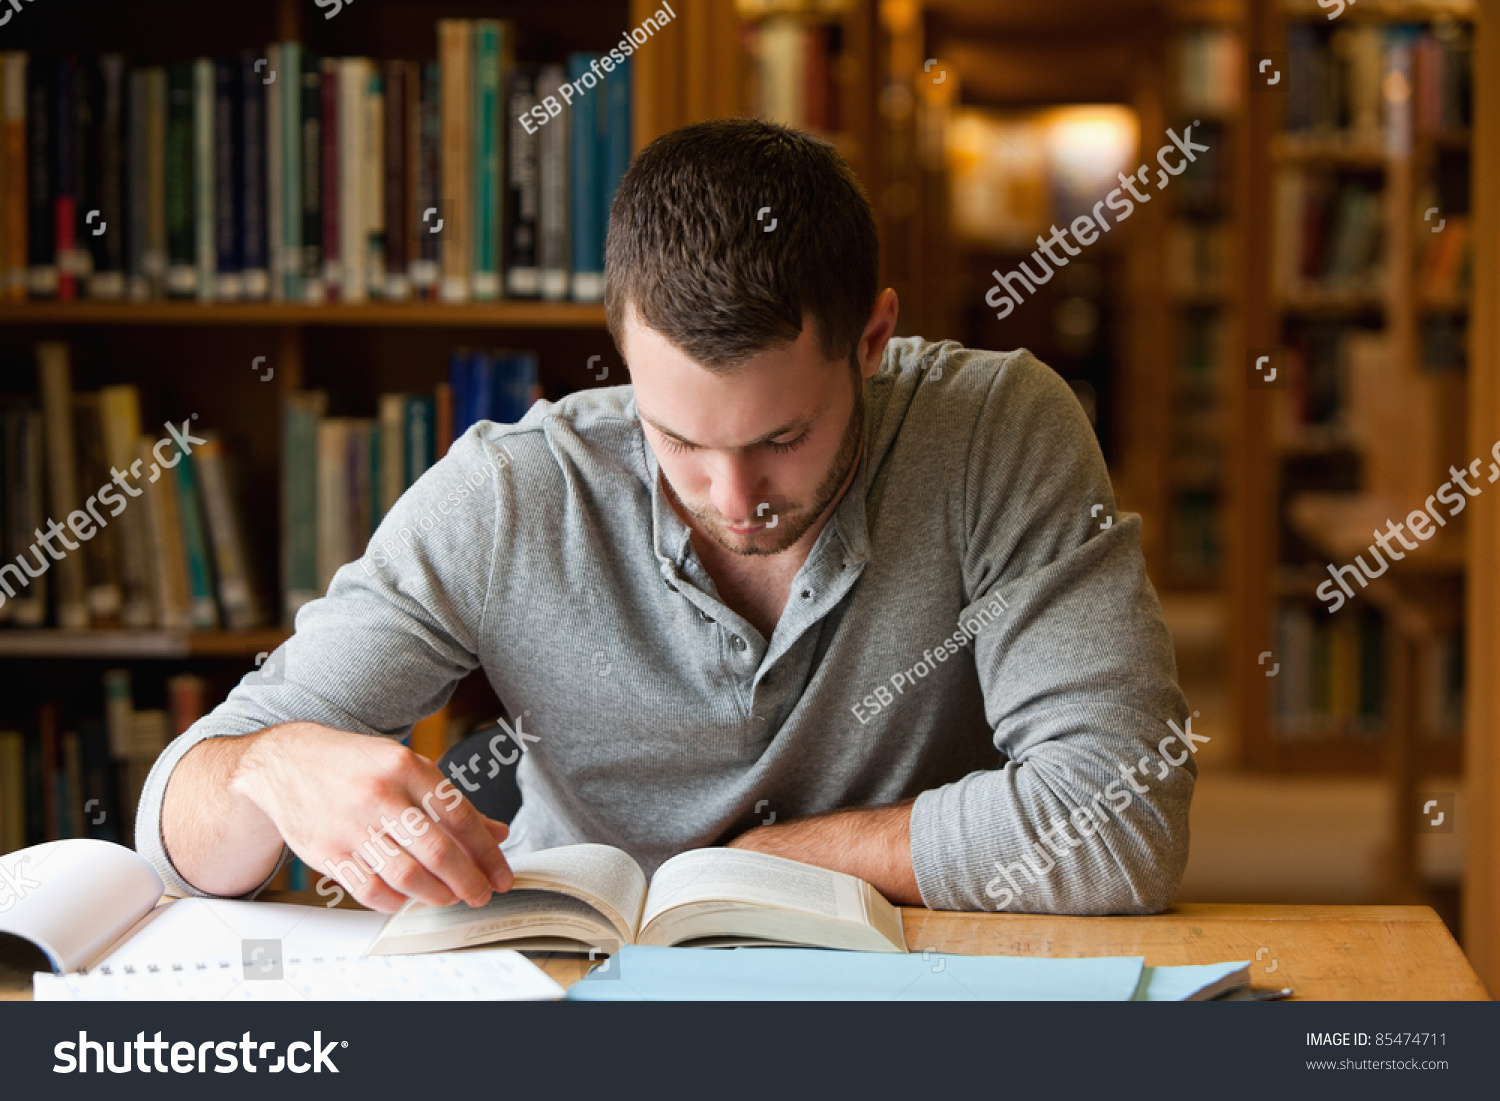 male student researching book library stock photo  male student researching a book in a library